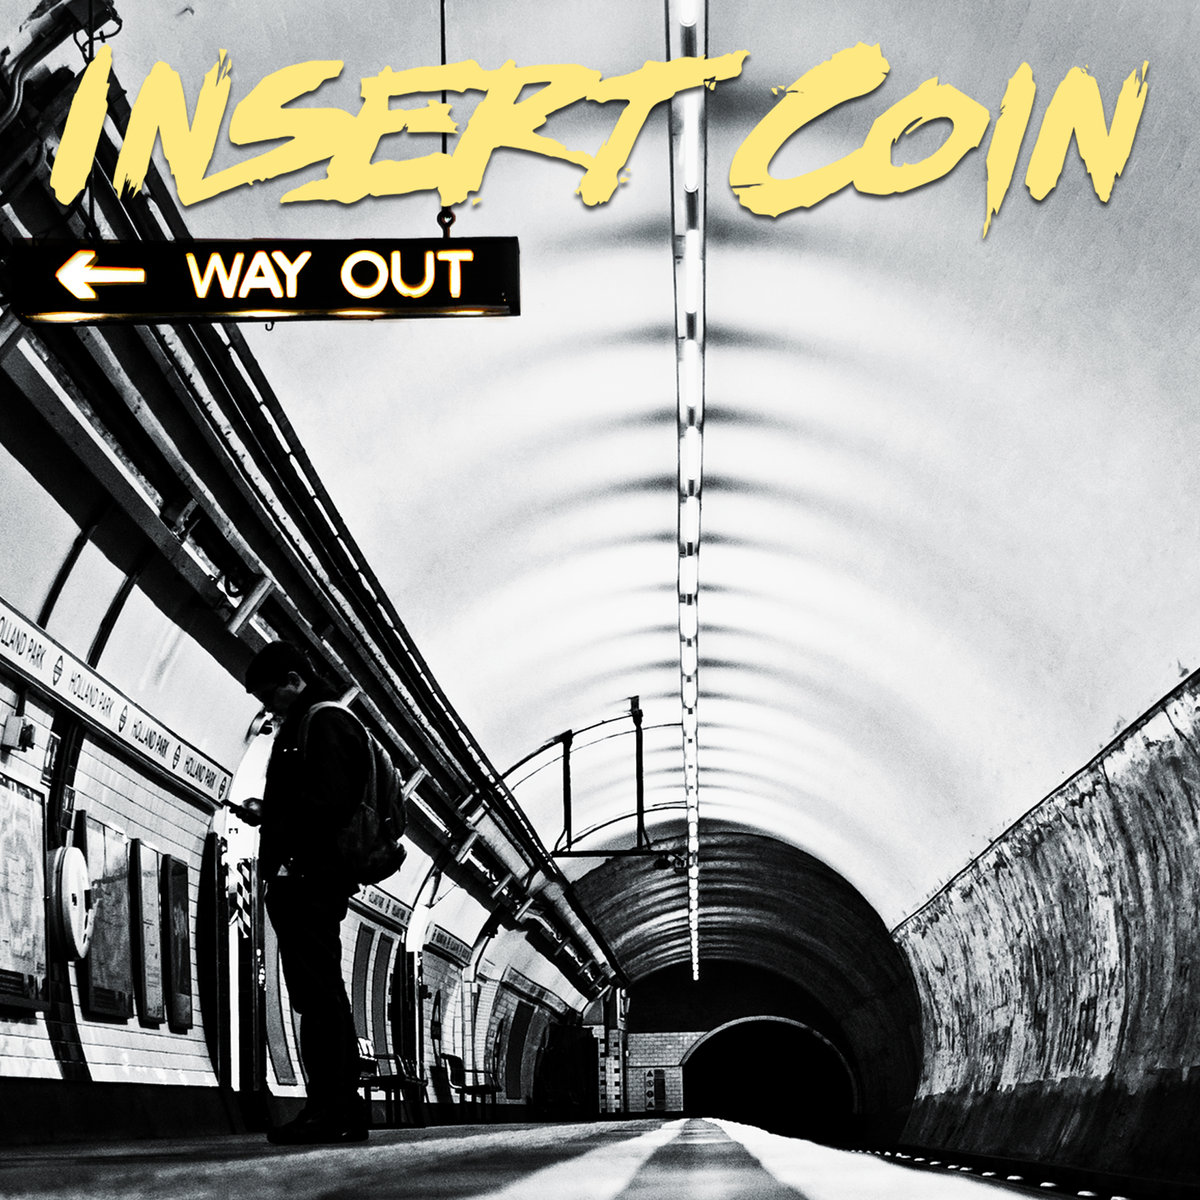 Insert Coin – Way Out